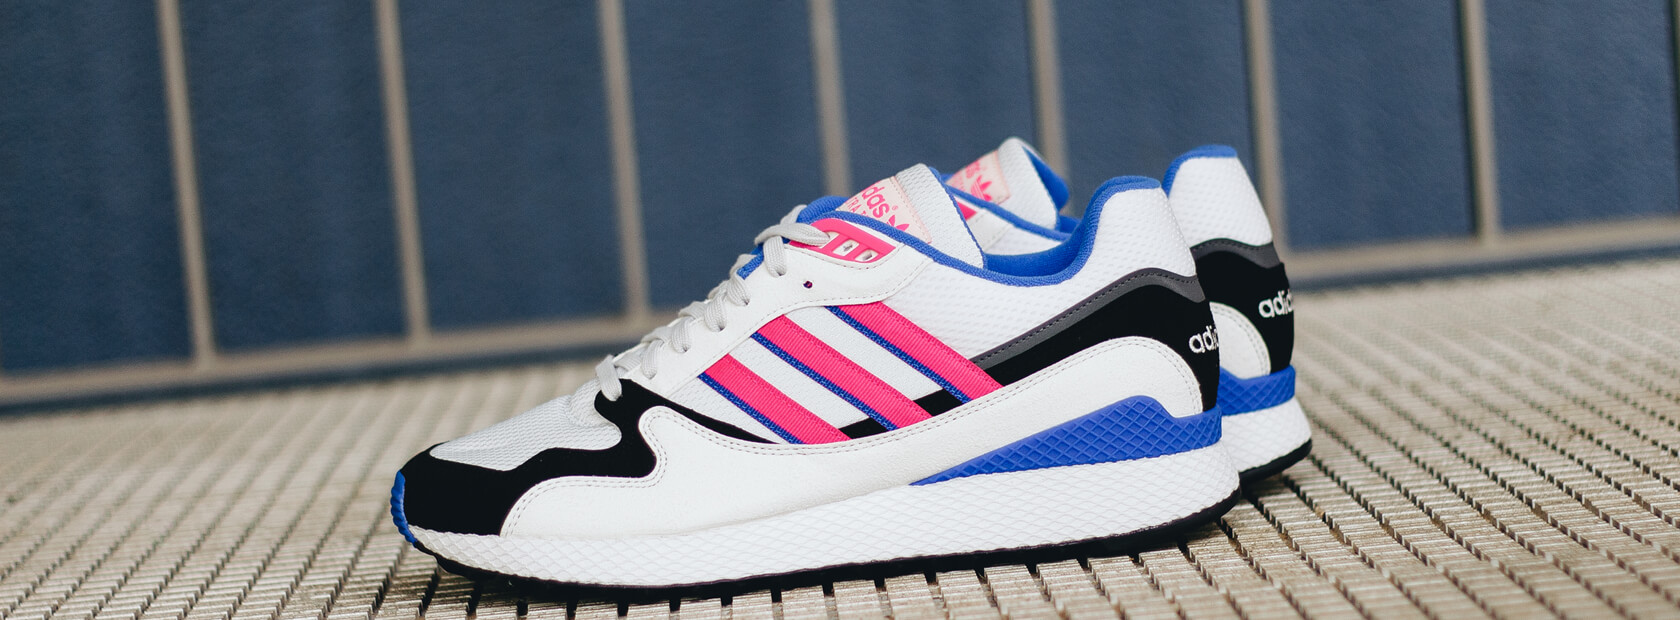 Adidas Ultra Tech - Crystal White / Shock Pink